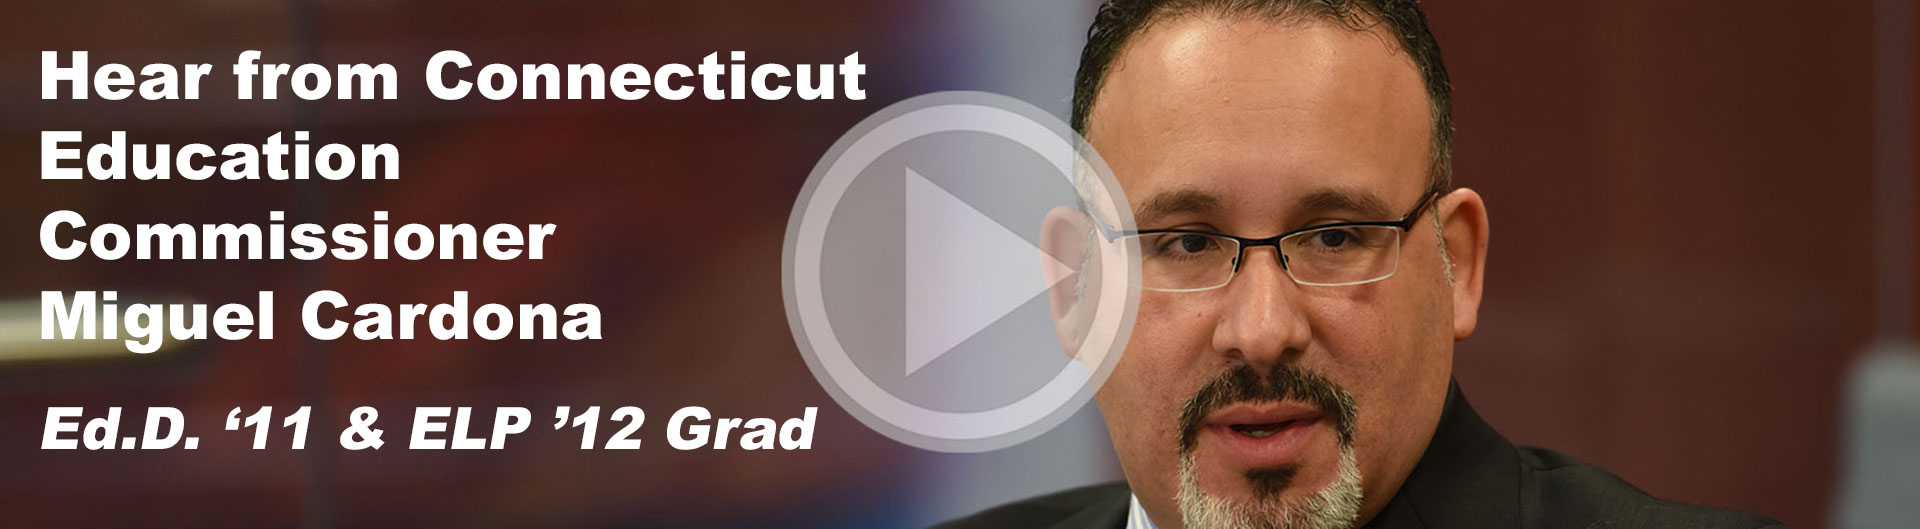 Hear from CT Education Commissioner Miguel Cardona Ed.D '11 and ELP '12 Grad